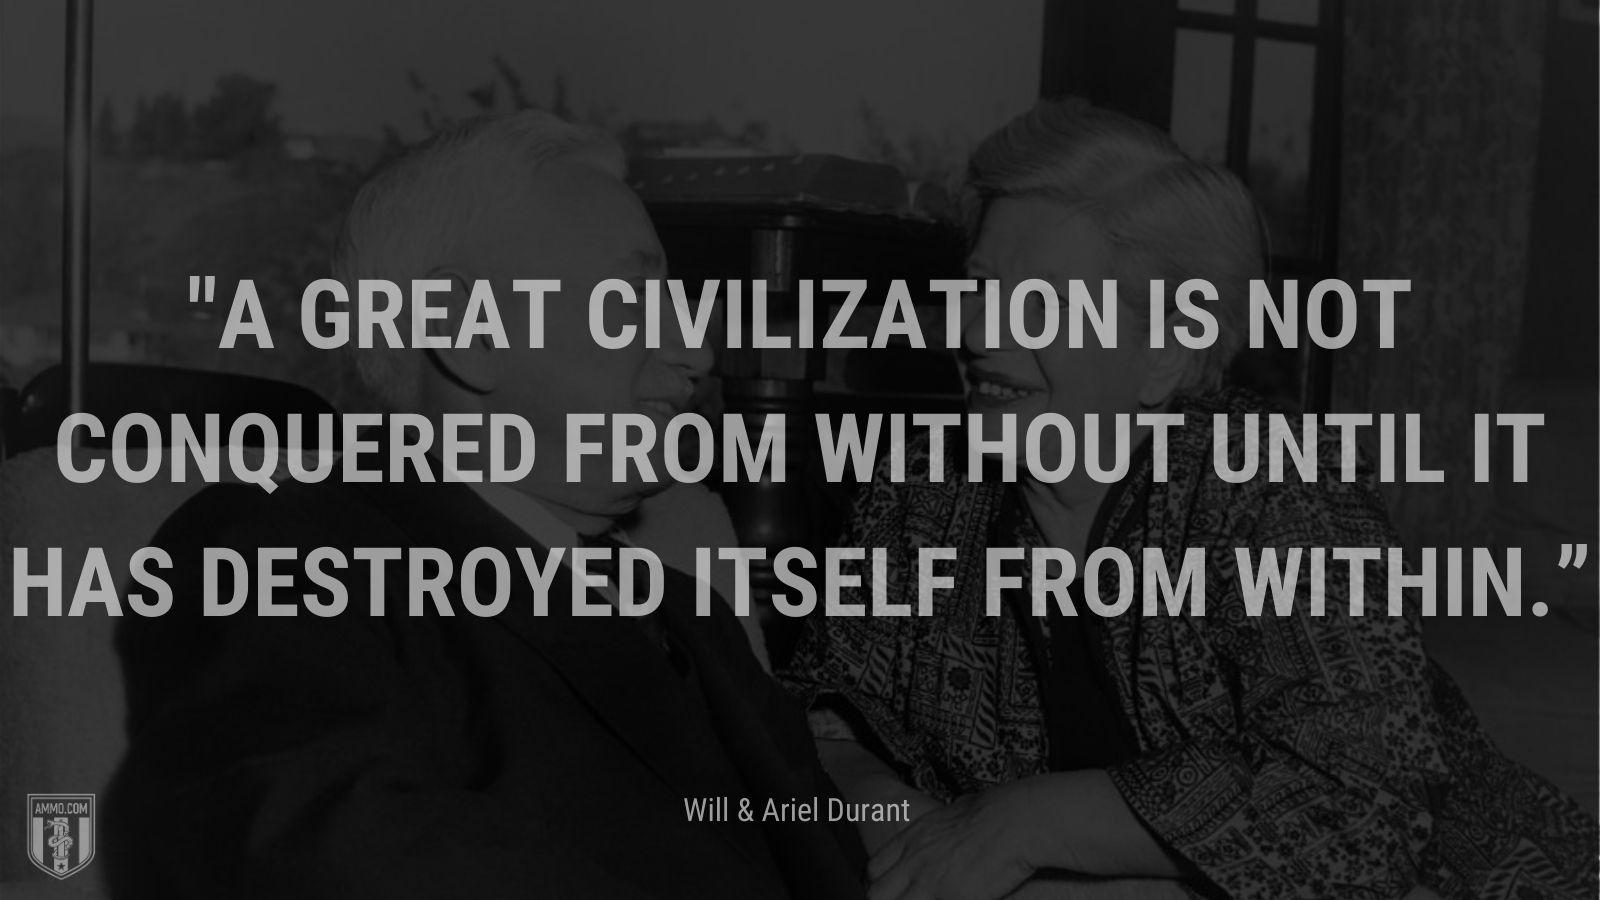 """""""A great civilization is not conquered from without until it has destroyed itself from within."""" - Will and Ariel Durant"""